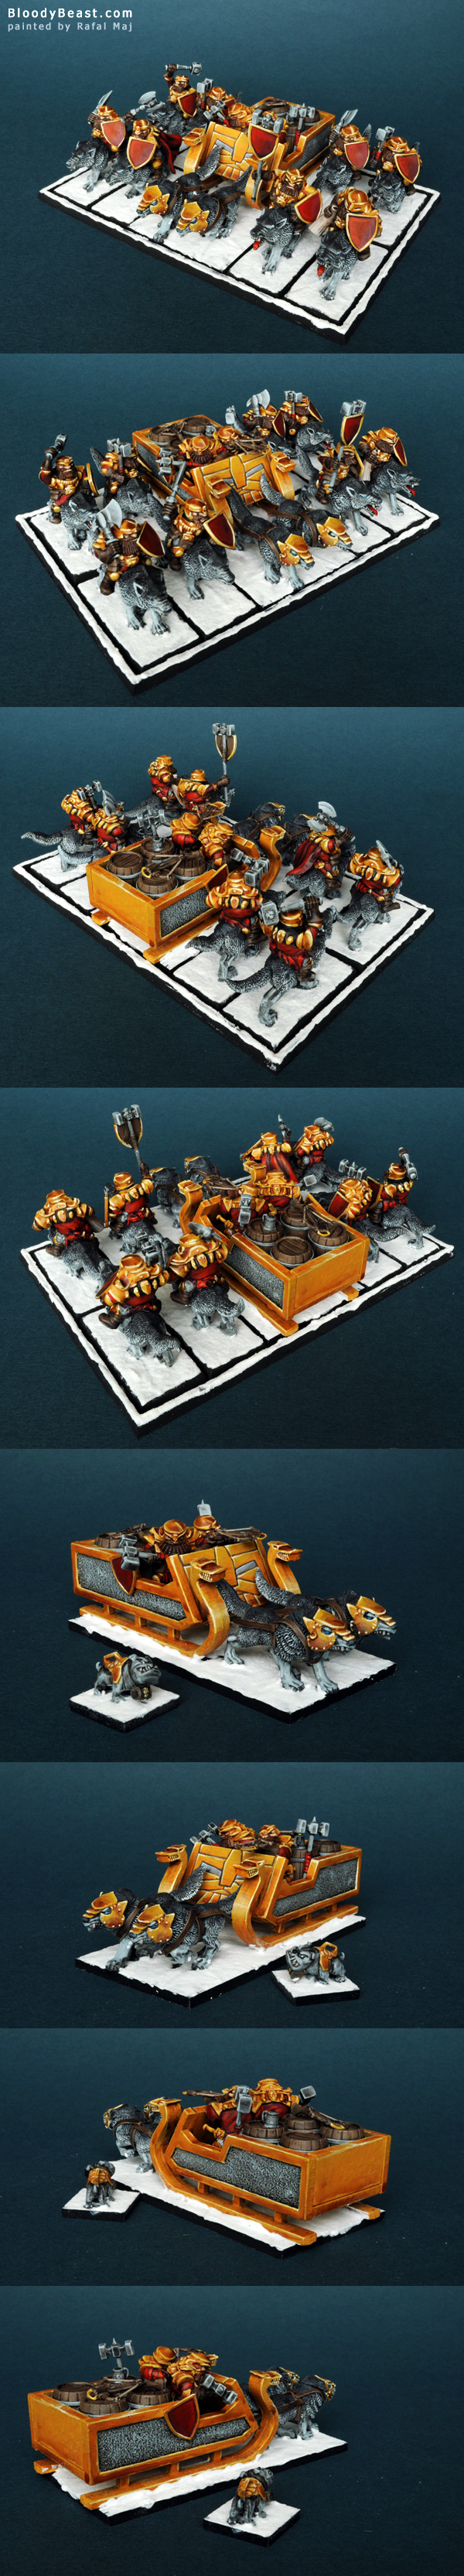 Mantic Dwarf Husky Cavalry with Sledge Chariot painted by Rafal Maj (BloodyBeast.com)